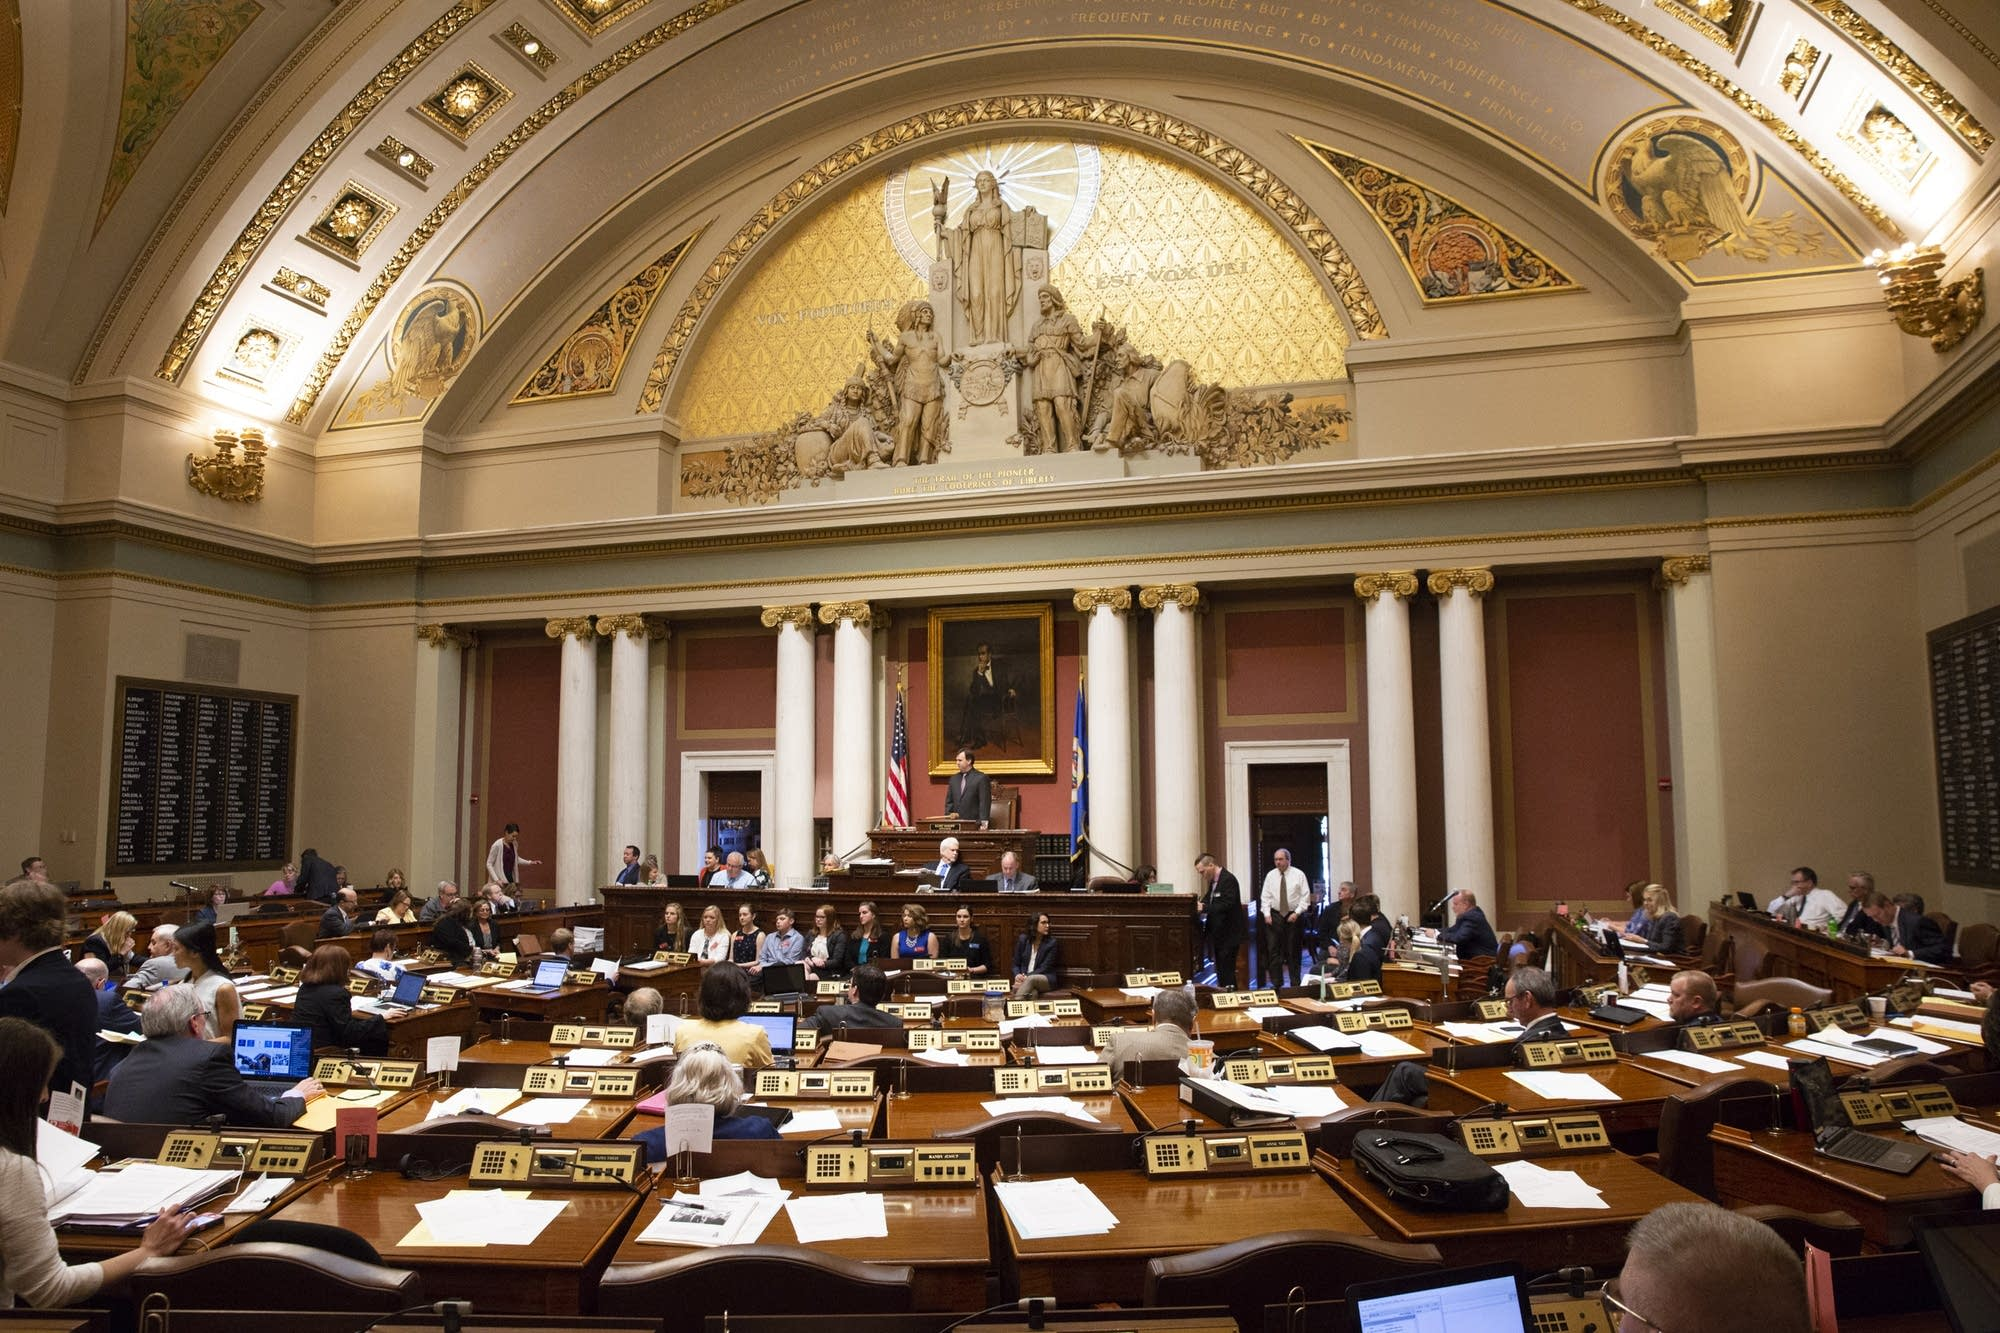 Legislators debate a bill on the house floor.